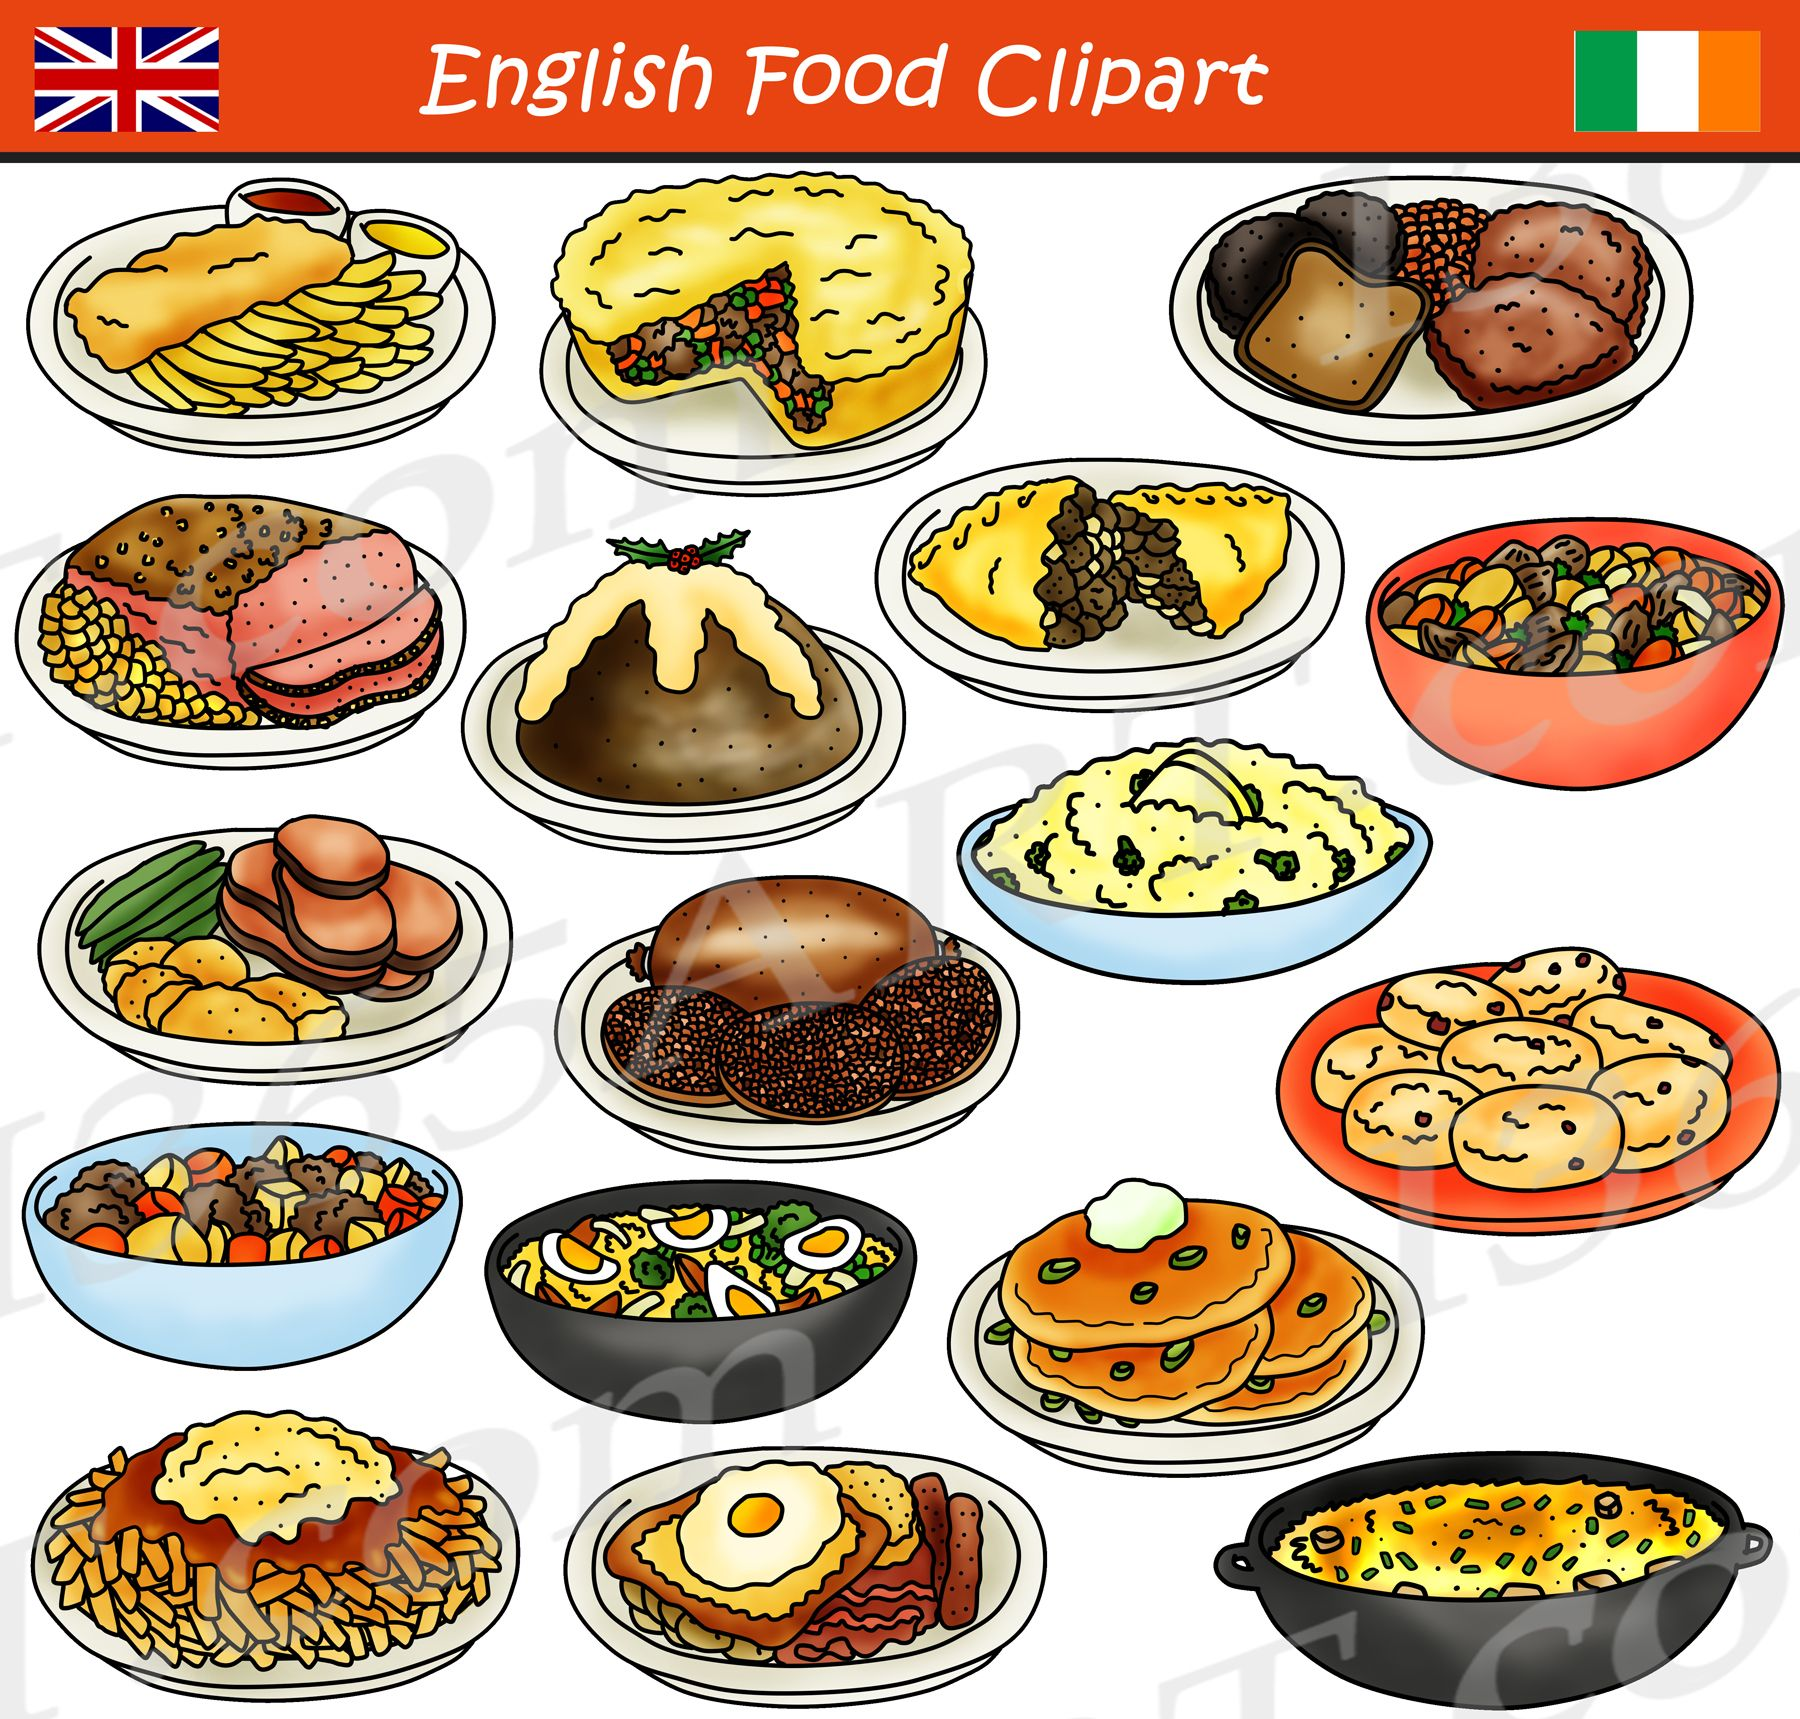 British Food Clipart.